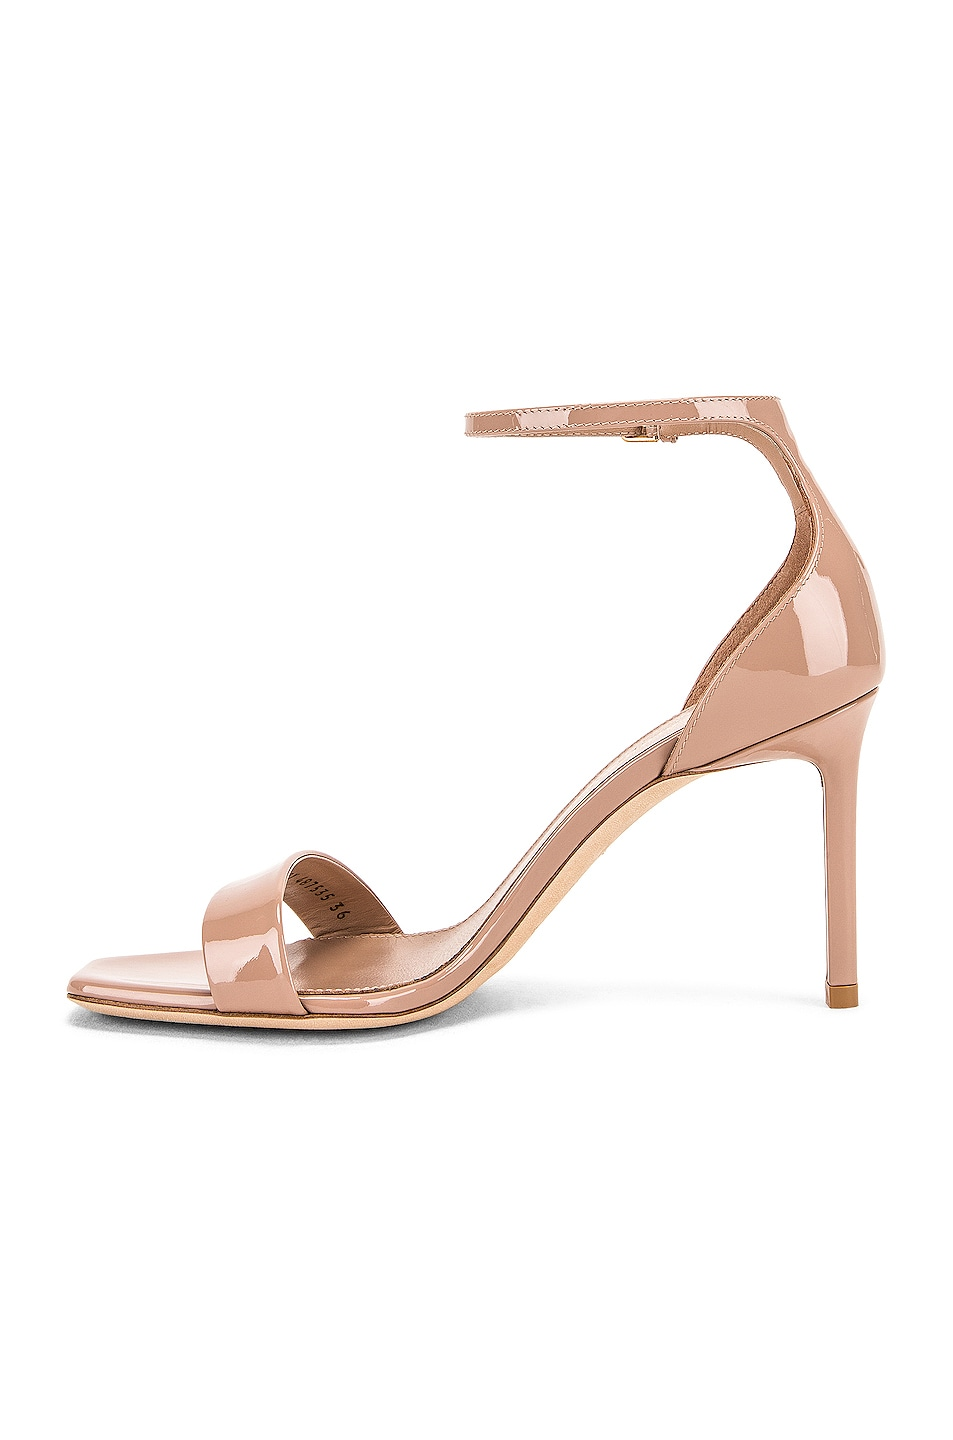 Image 5 of Saint Laurent Amber Ankle Strap Sandals in Nude Rose